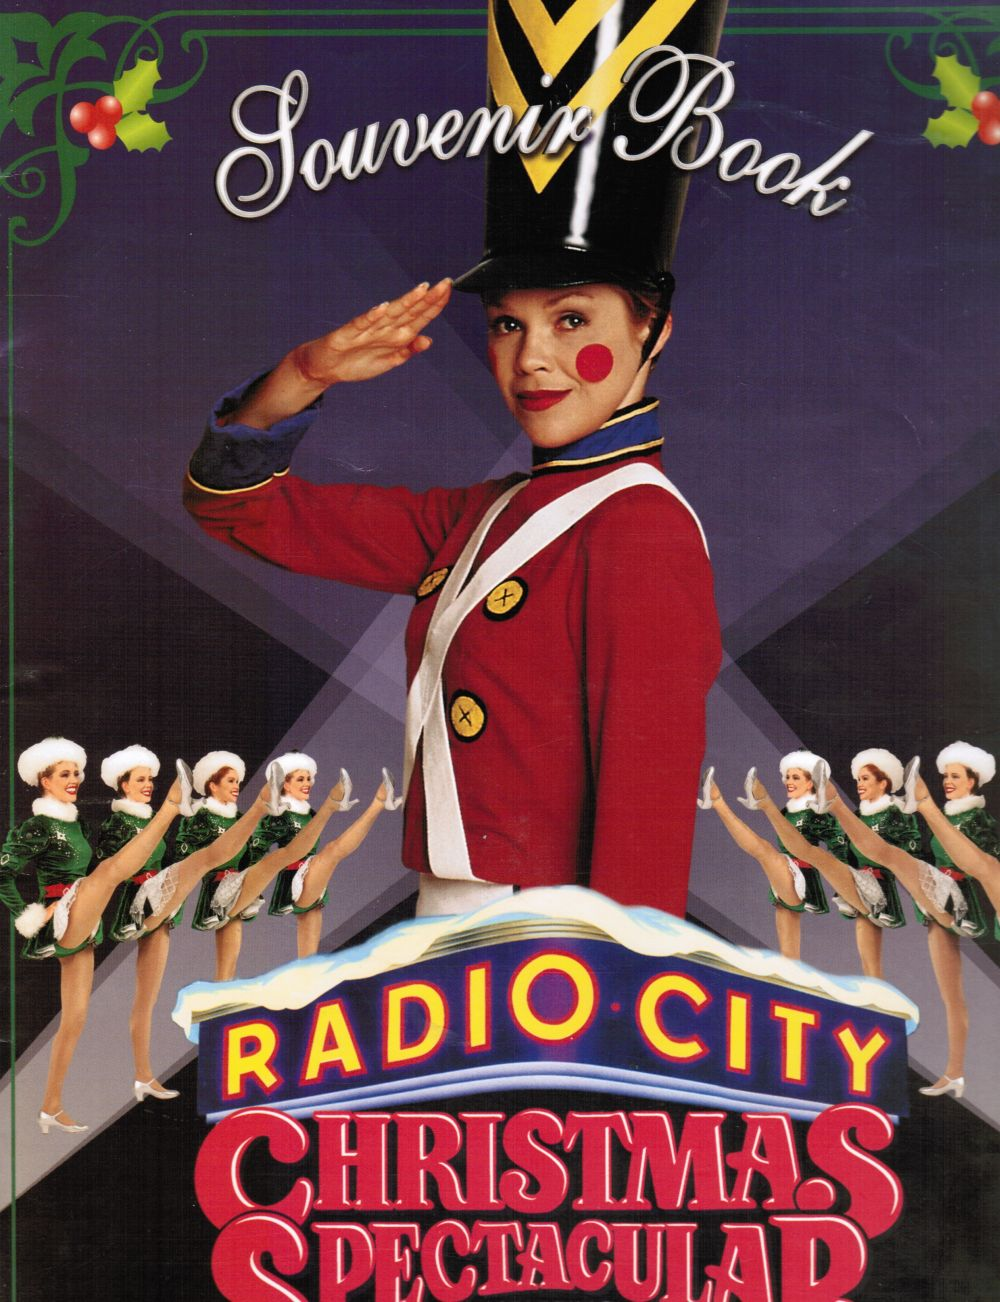 Image for Radio City, Christmas Spectacular, Starring the Rockettes